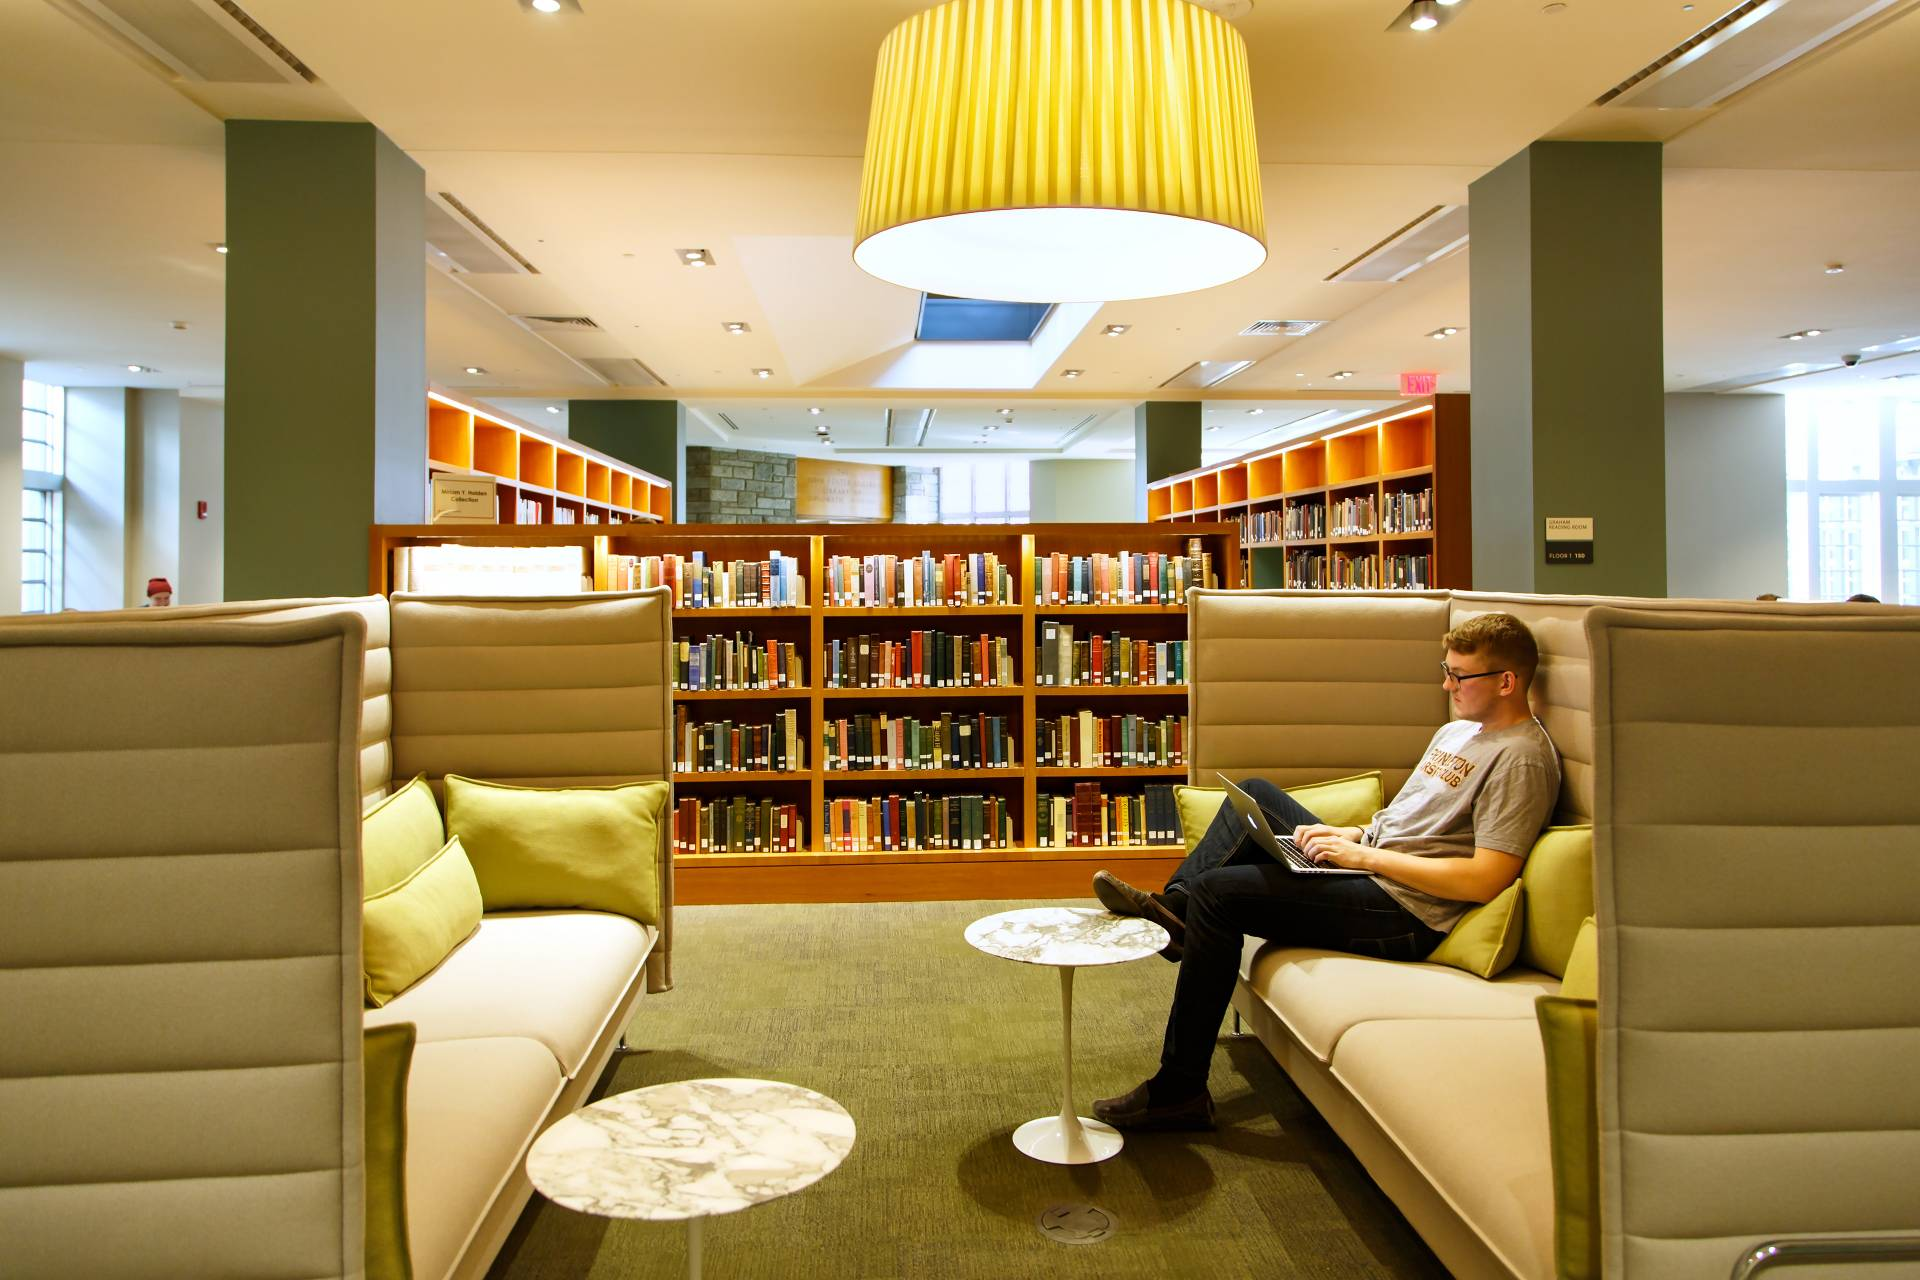 Student sitting on large green couch in library room